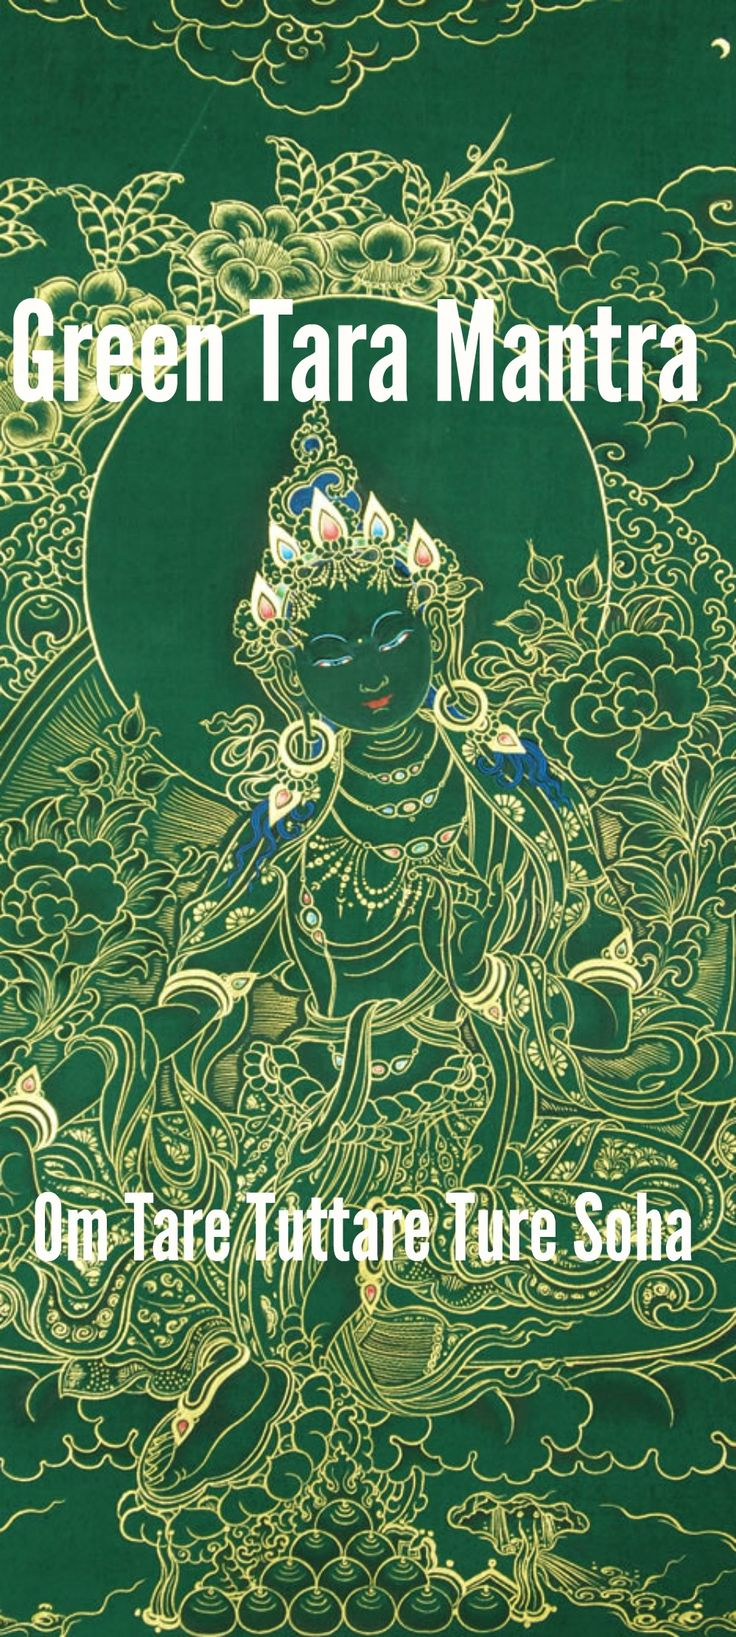 Green Tara Mantra – Om Tare Tuttare Ture Soha – Translation, Meaning, Chanting Benefits In Tibetan Buddhism, females are usually representative of wisdom more than compassion. Nevertheless, She is one of the unique exceptions where compassion is more of a dominant characteristic.